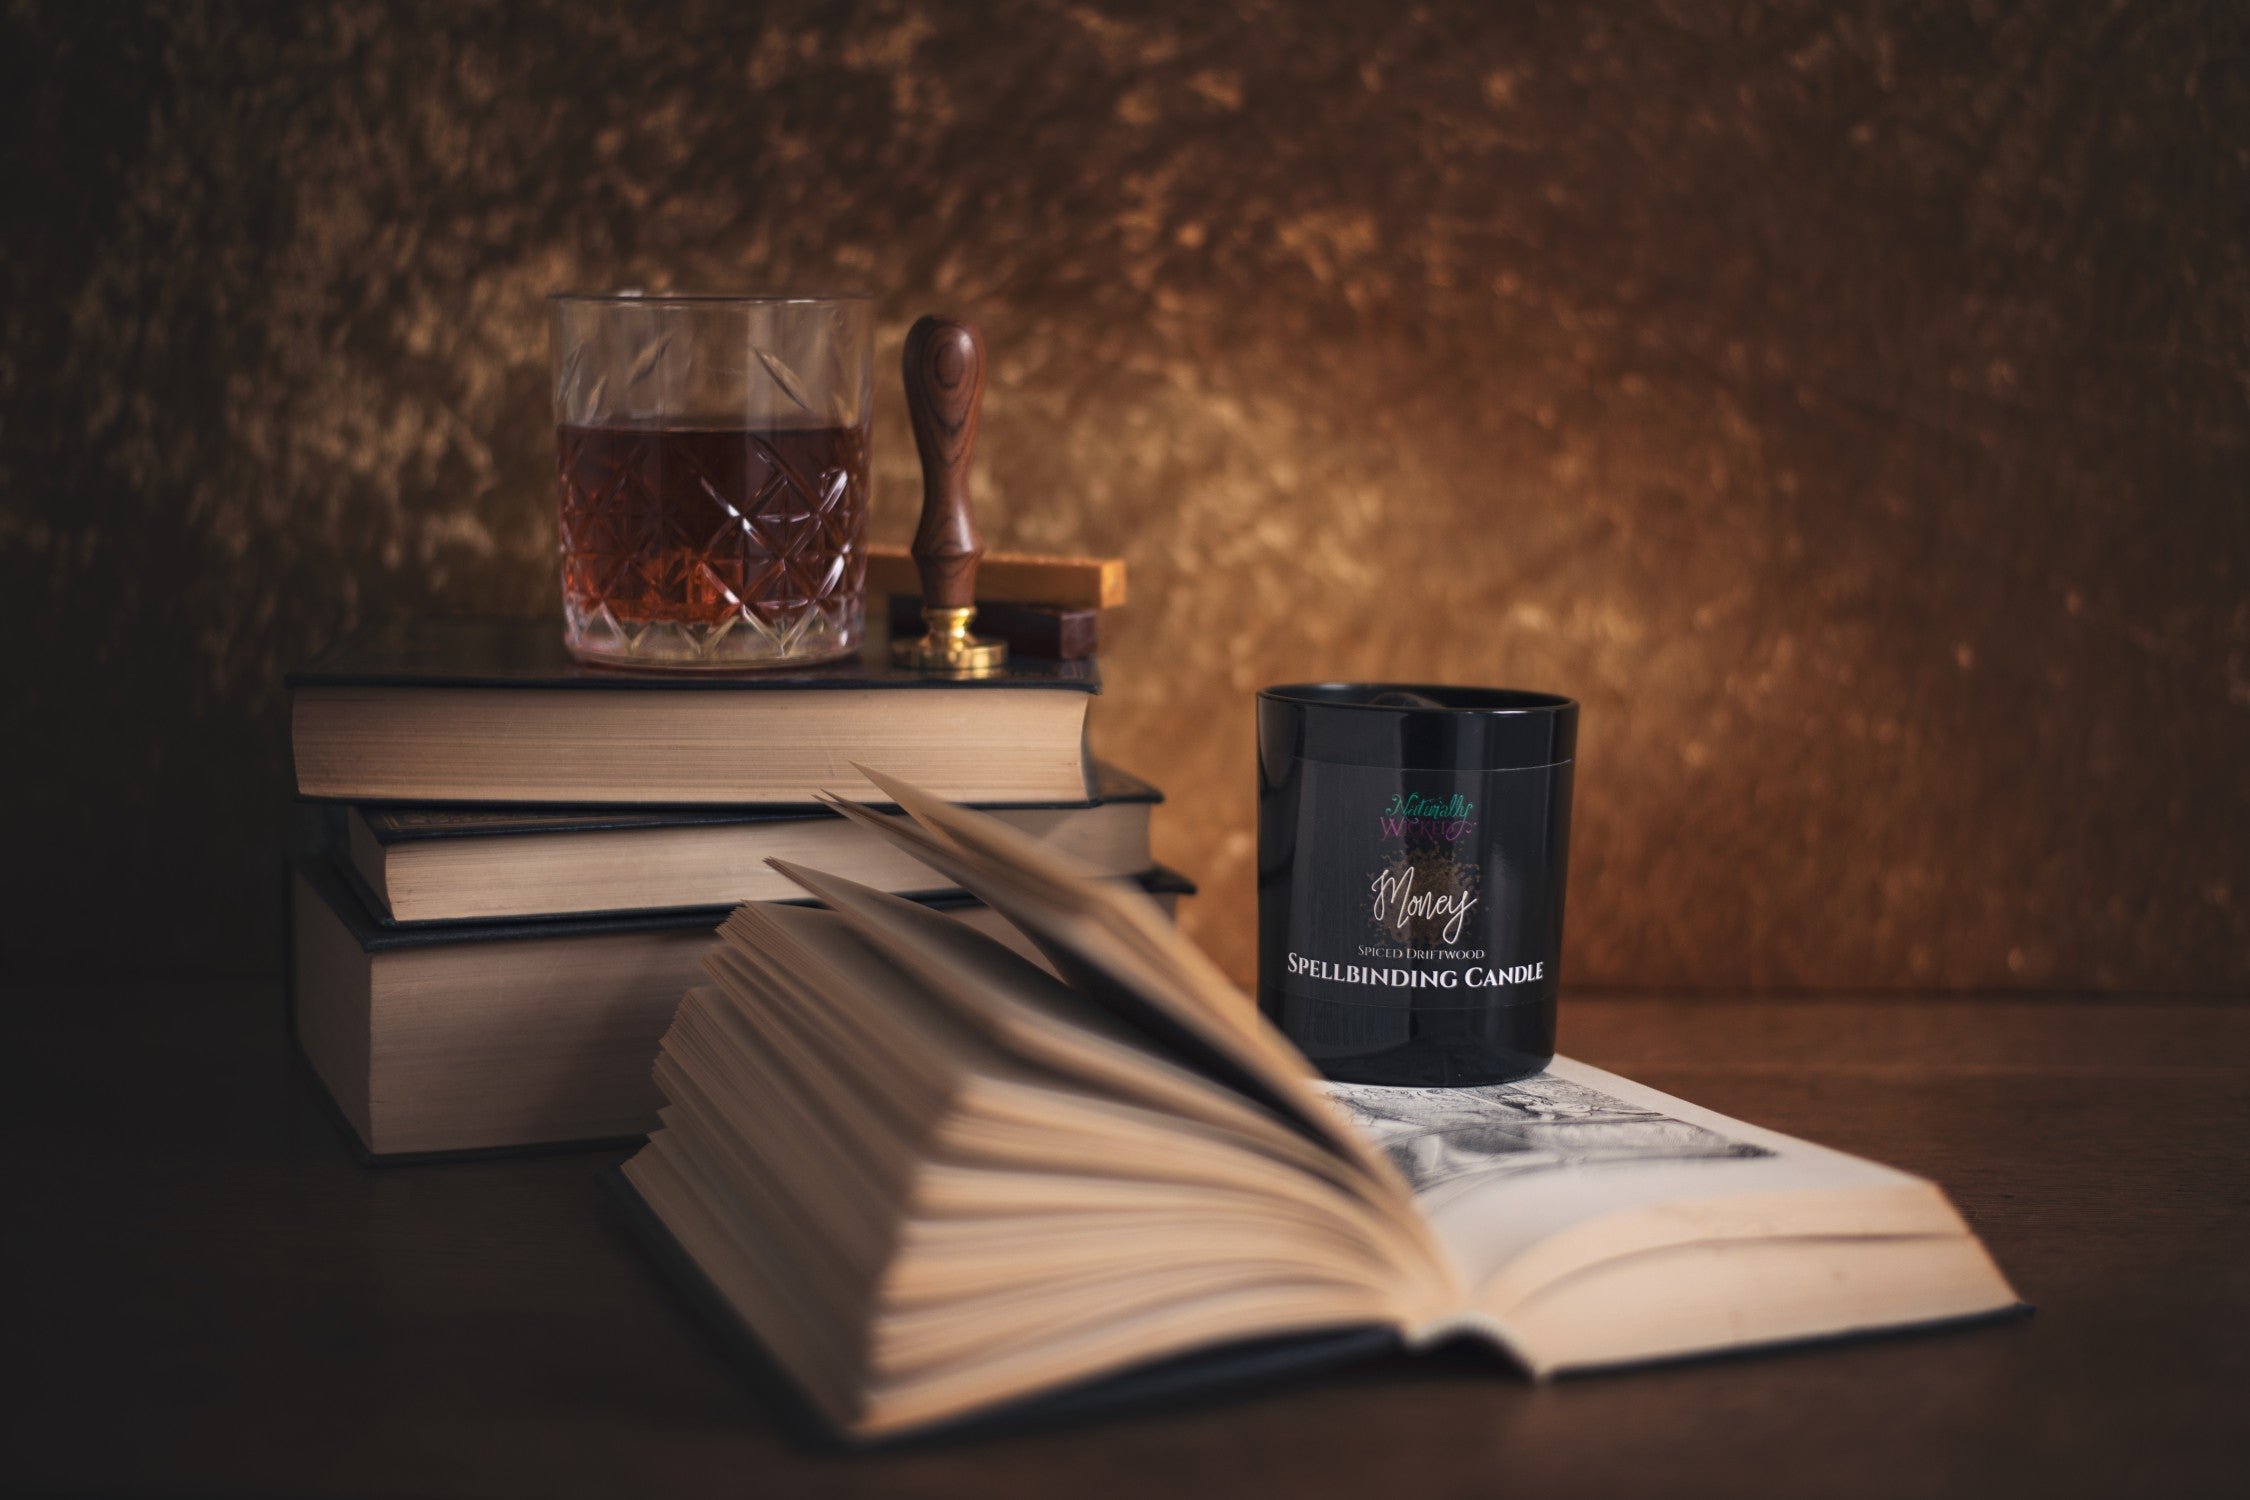 Naturally Wicked Spellbinding Money Candle On Top Of Sophisticated Book With Whiskey In Background